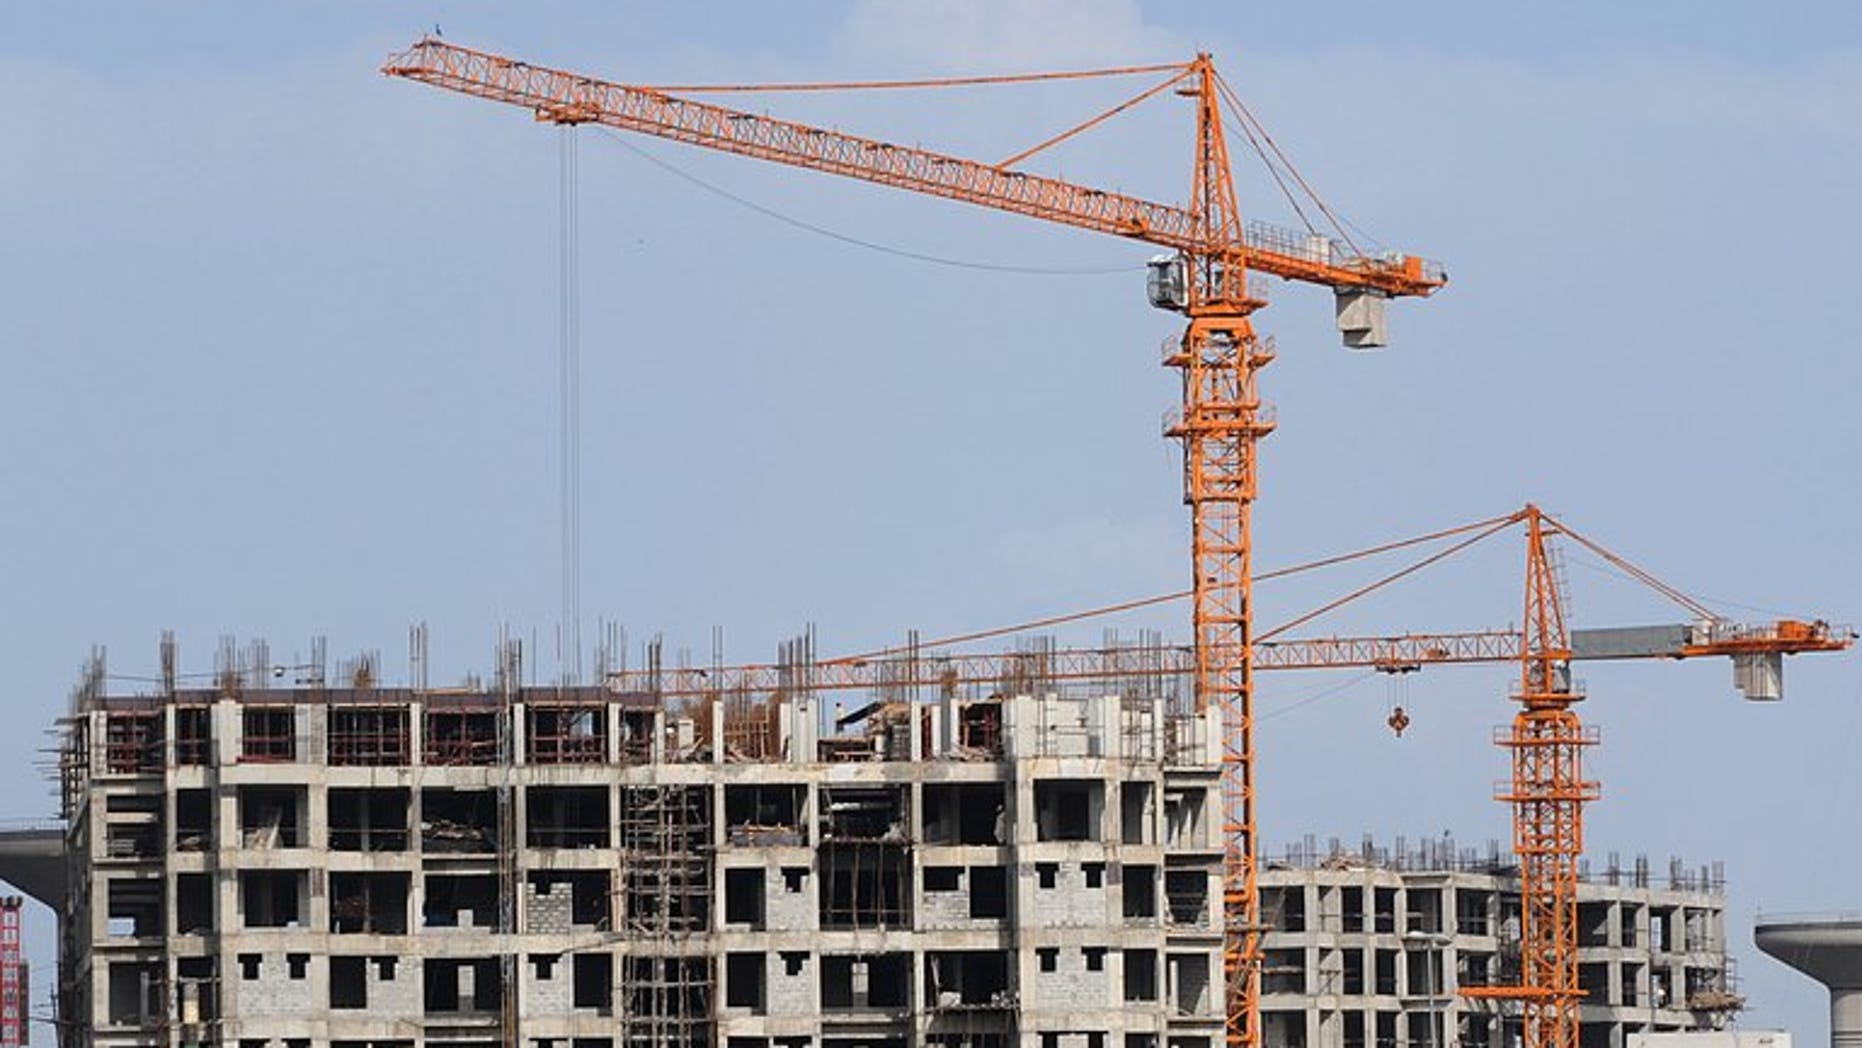 Construction cranes stand at an under construction building on the outskirts of Islamabad on April 15, 2009. The International Monetary Fund warned Pakistan that economic growth could be worse than expected next year due to strict austerity measures built into a $6.7 billion rescue loan.